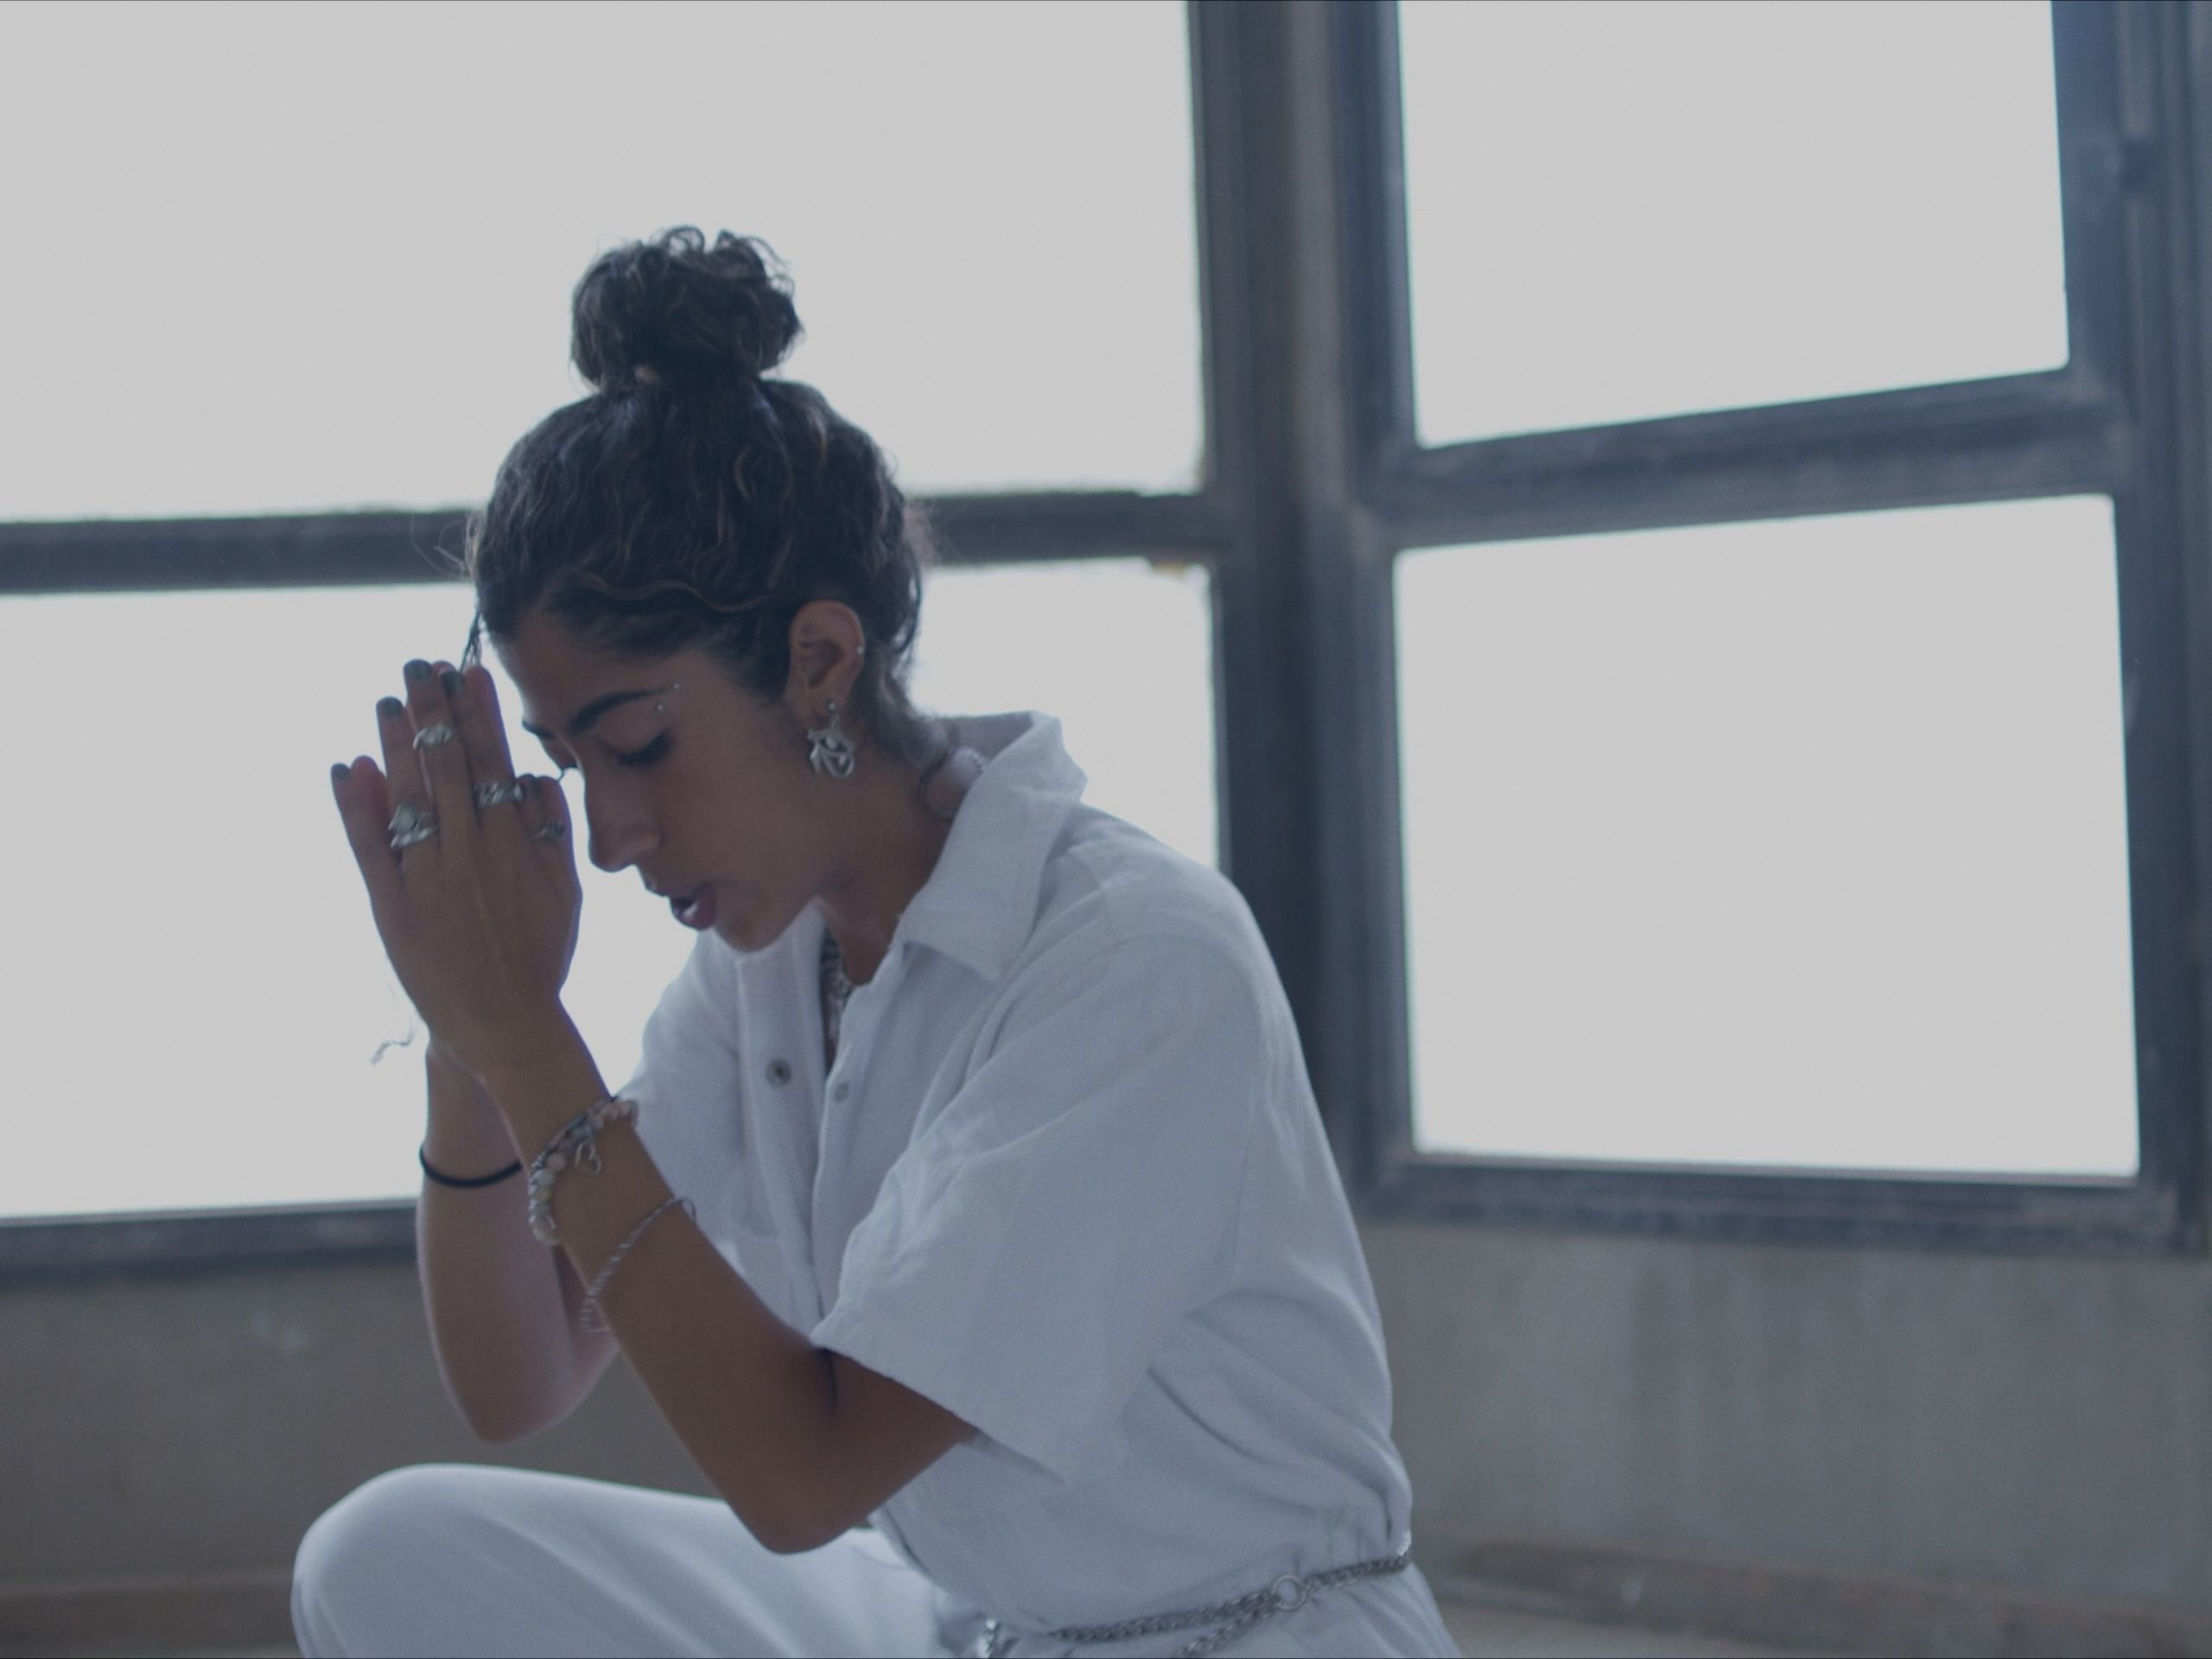 A woman in white sitting with her hands in prayer